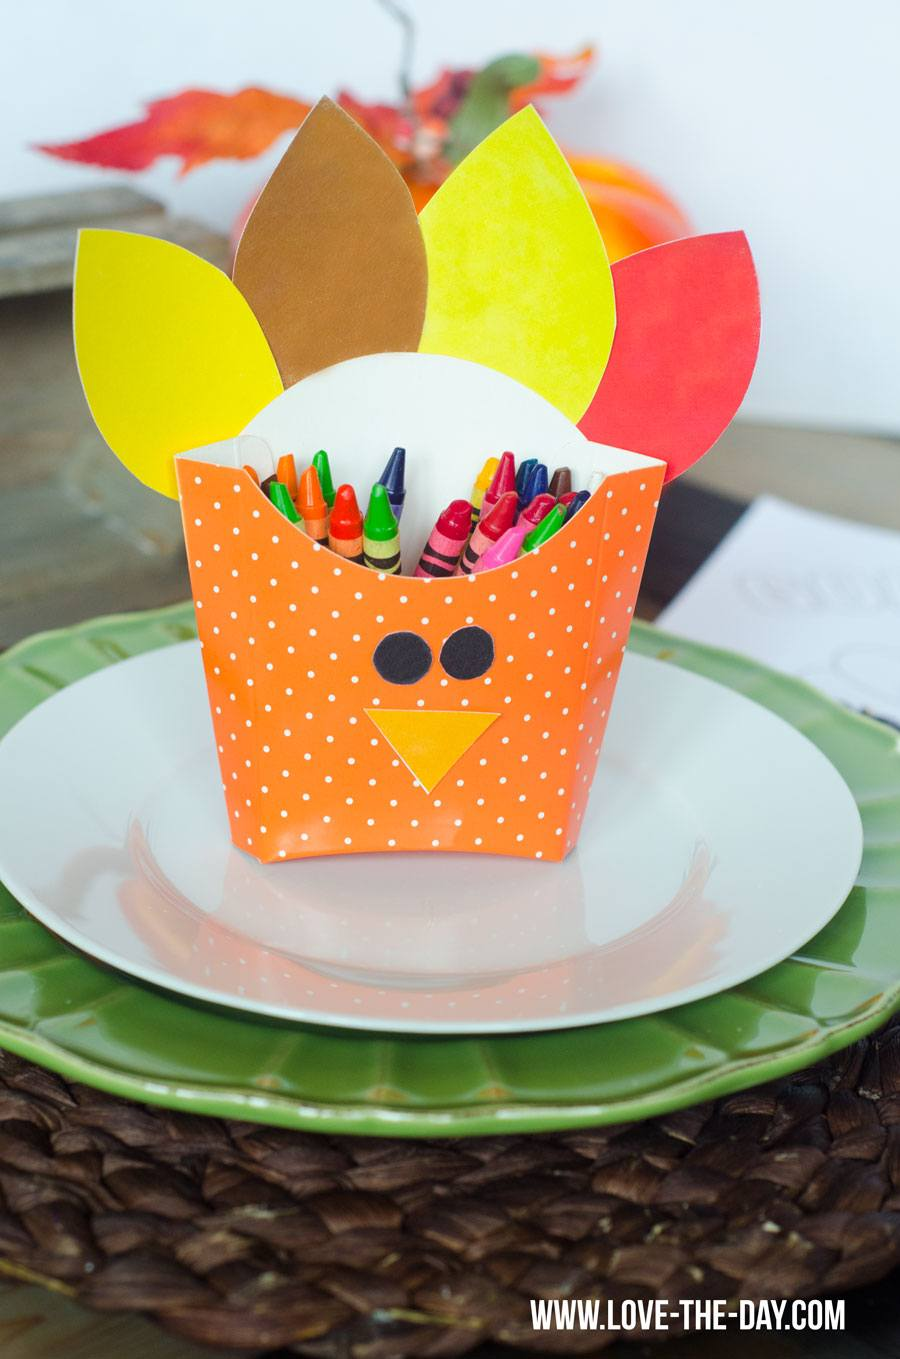 Resin Crafts Blog | DIY Crafts | DIY Kids Activities | Fall Crafts for Kids | DIY Thanksgiving Decor |